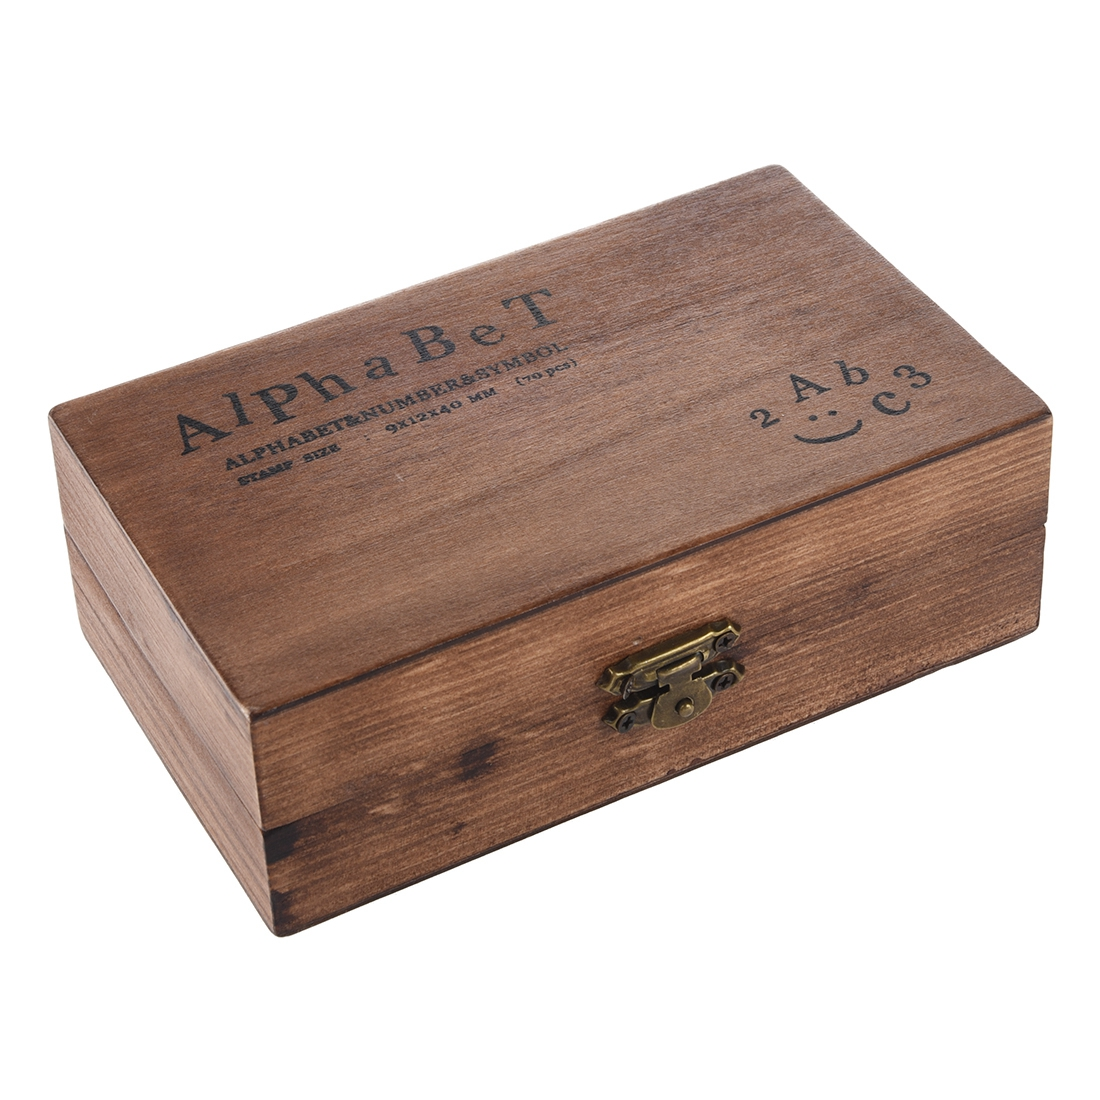 Pack of 70pcs Rubber Stamps Set Vintage Wooden Box Case Alphabet Letters Number Craft (No Ink Pad Included) details about east of india rubber stamps christmas weddings gift tags special occasions craft